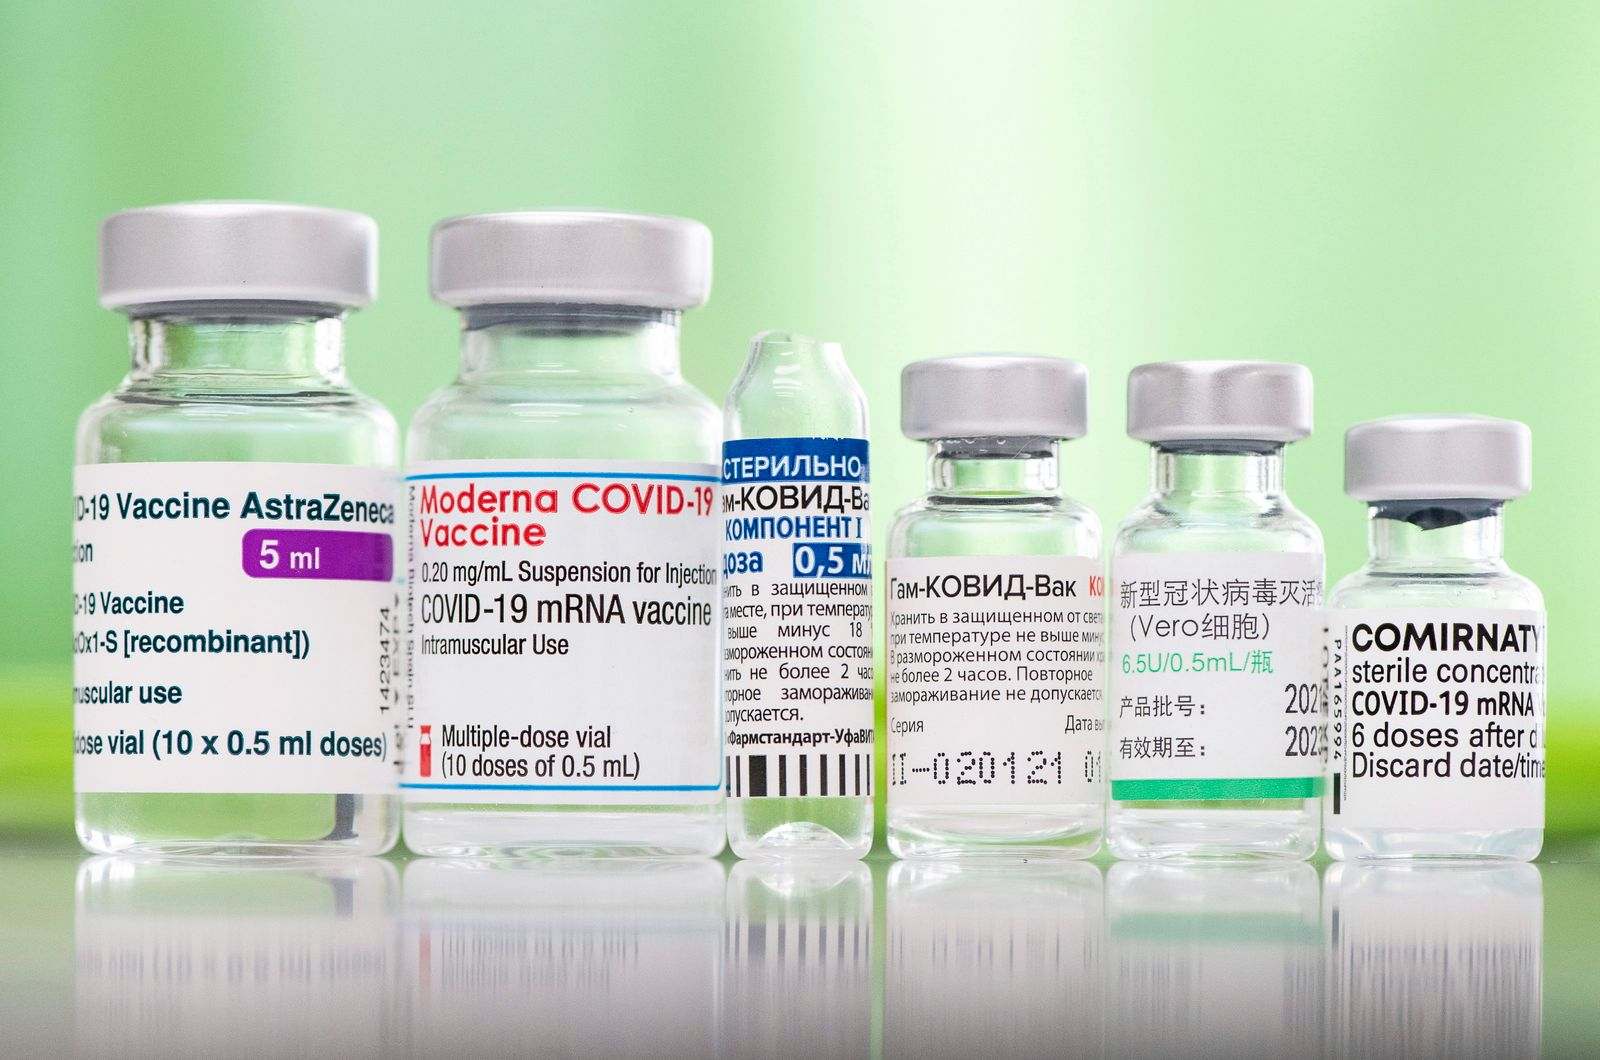 National vaccination campaign against COVID-19 continues in Hungary